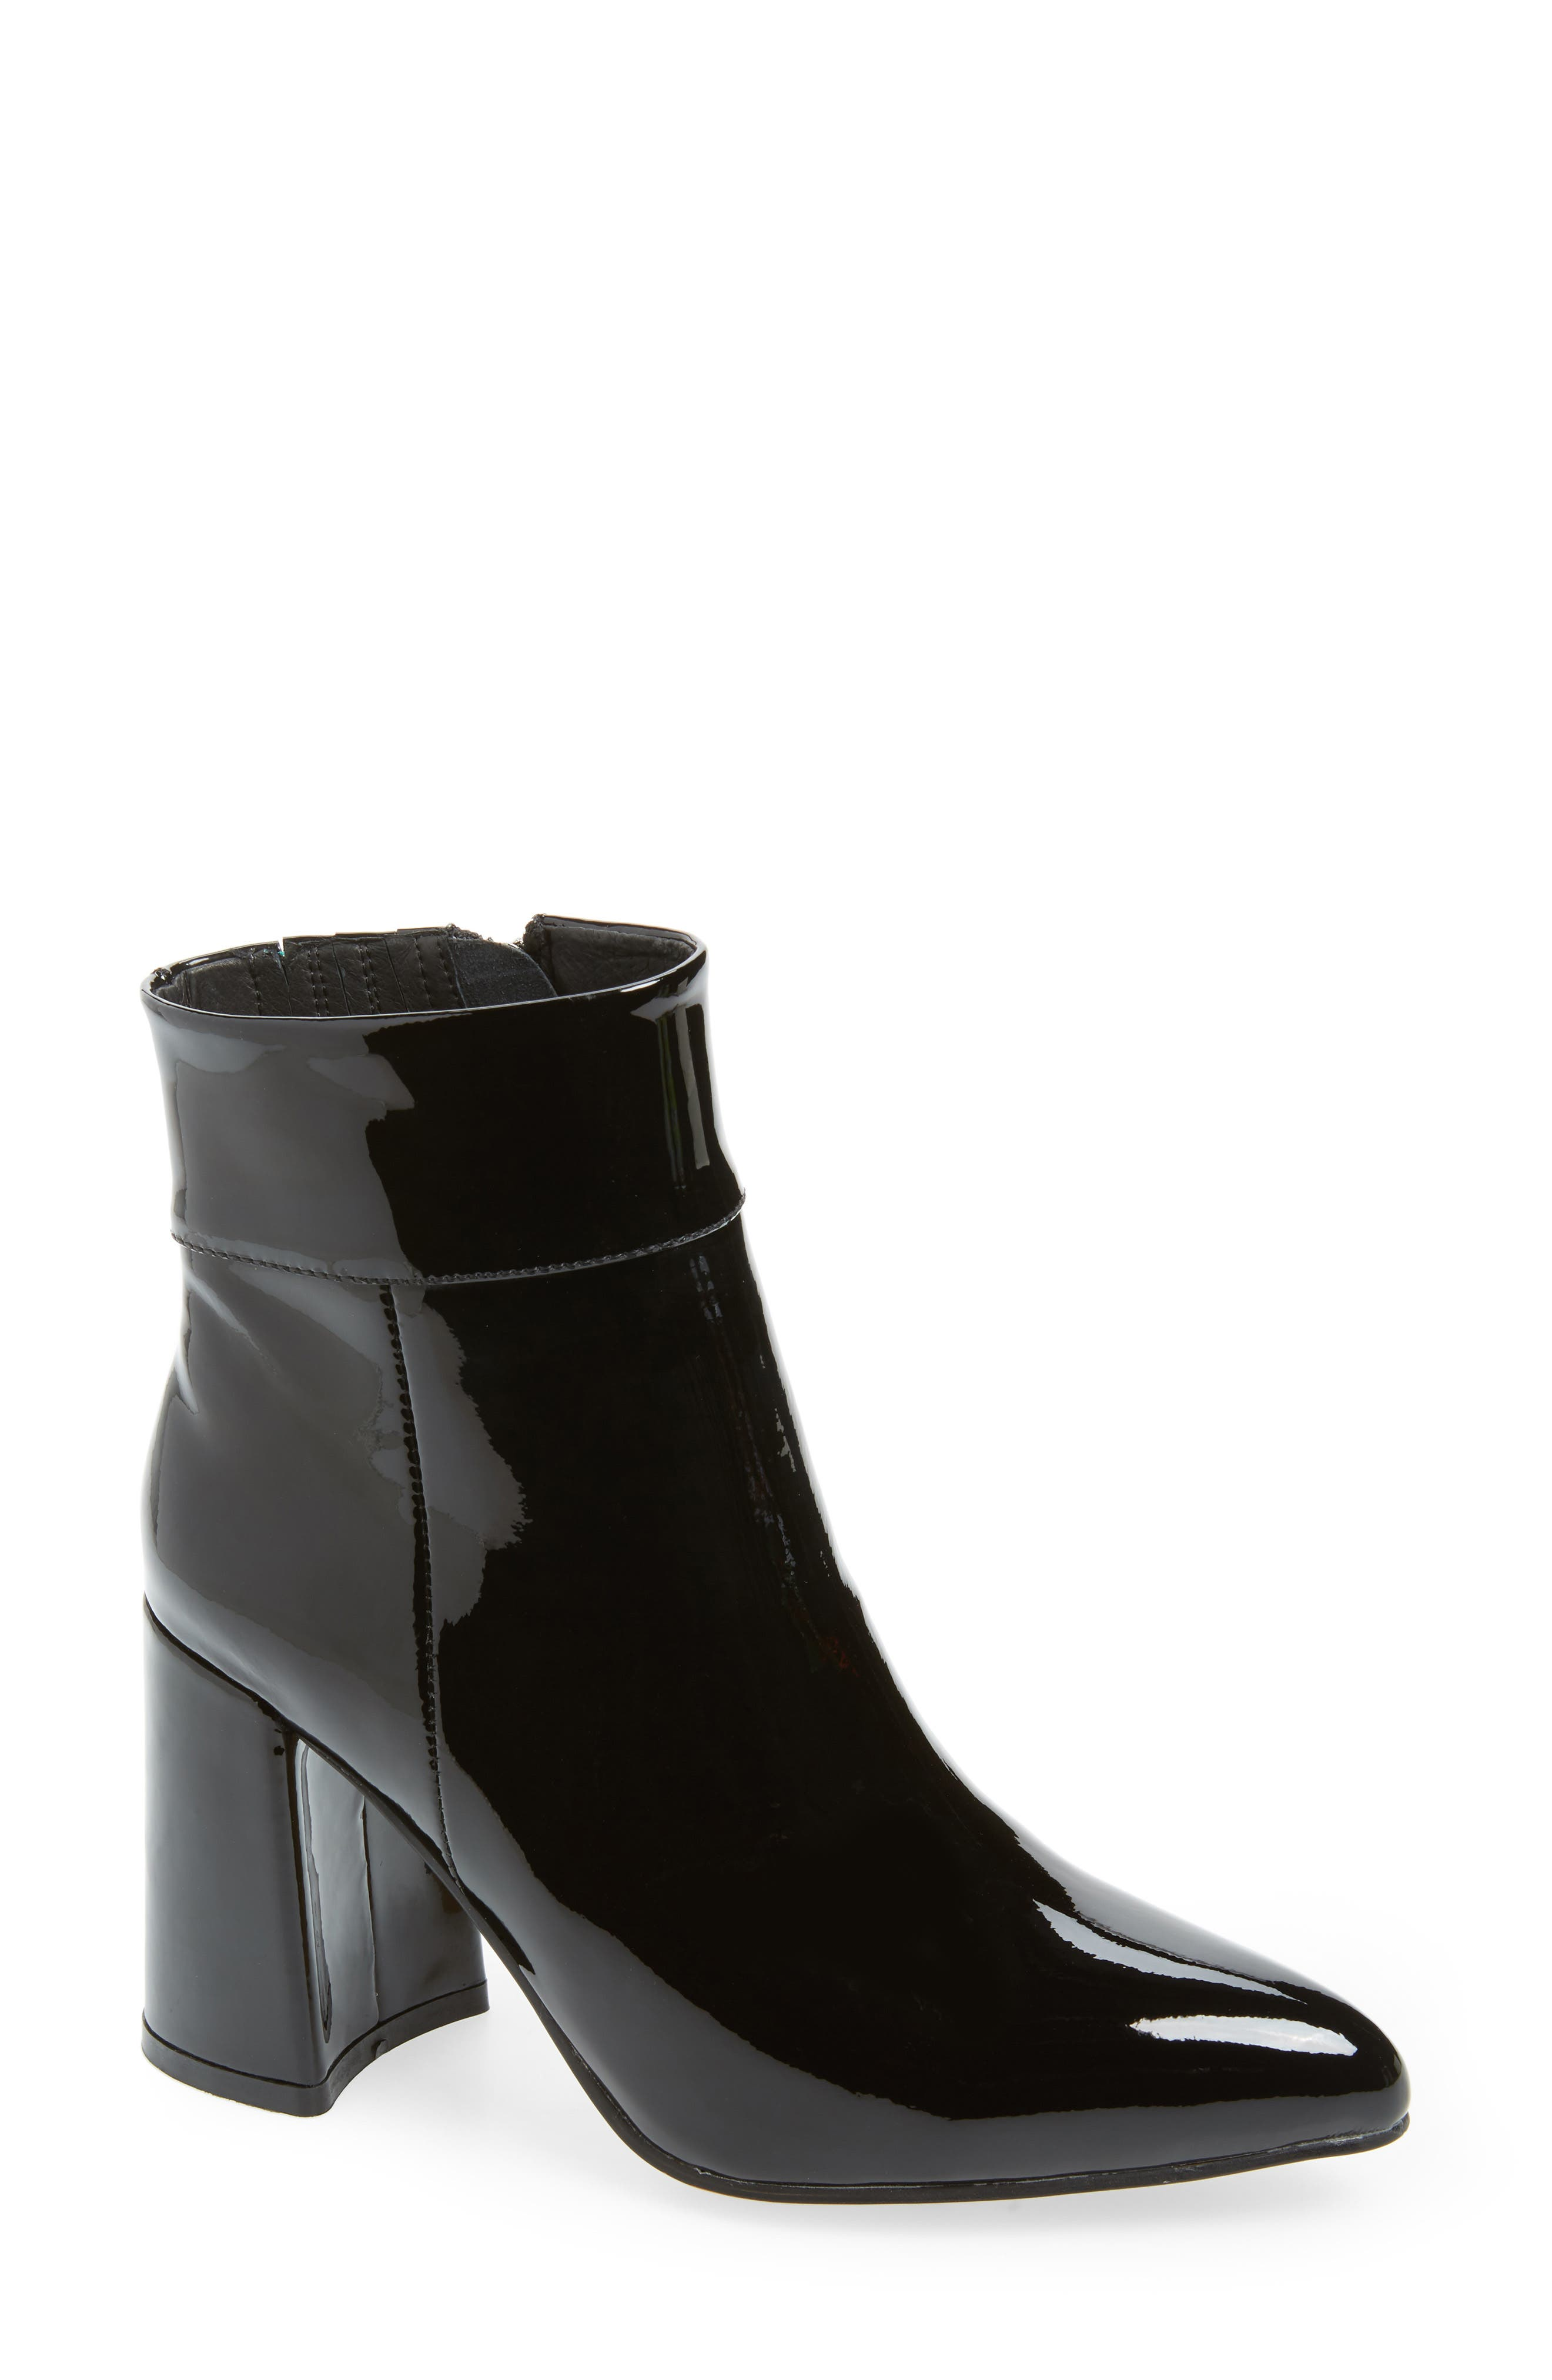 Beth Bootie in Black Patent Leather